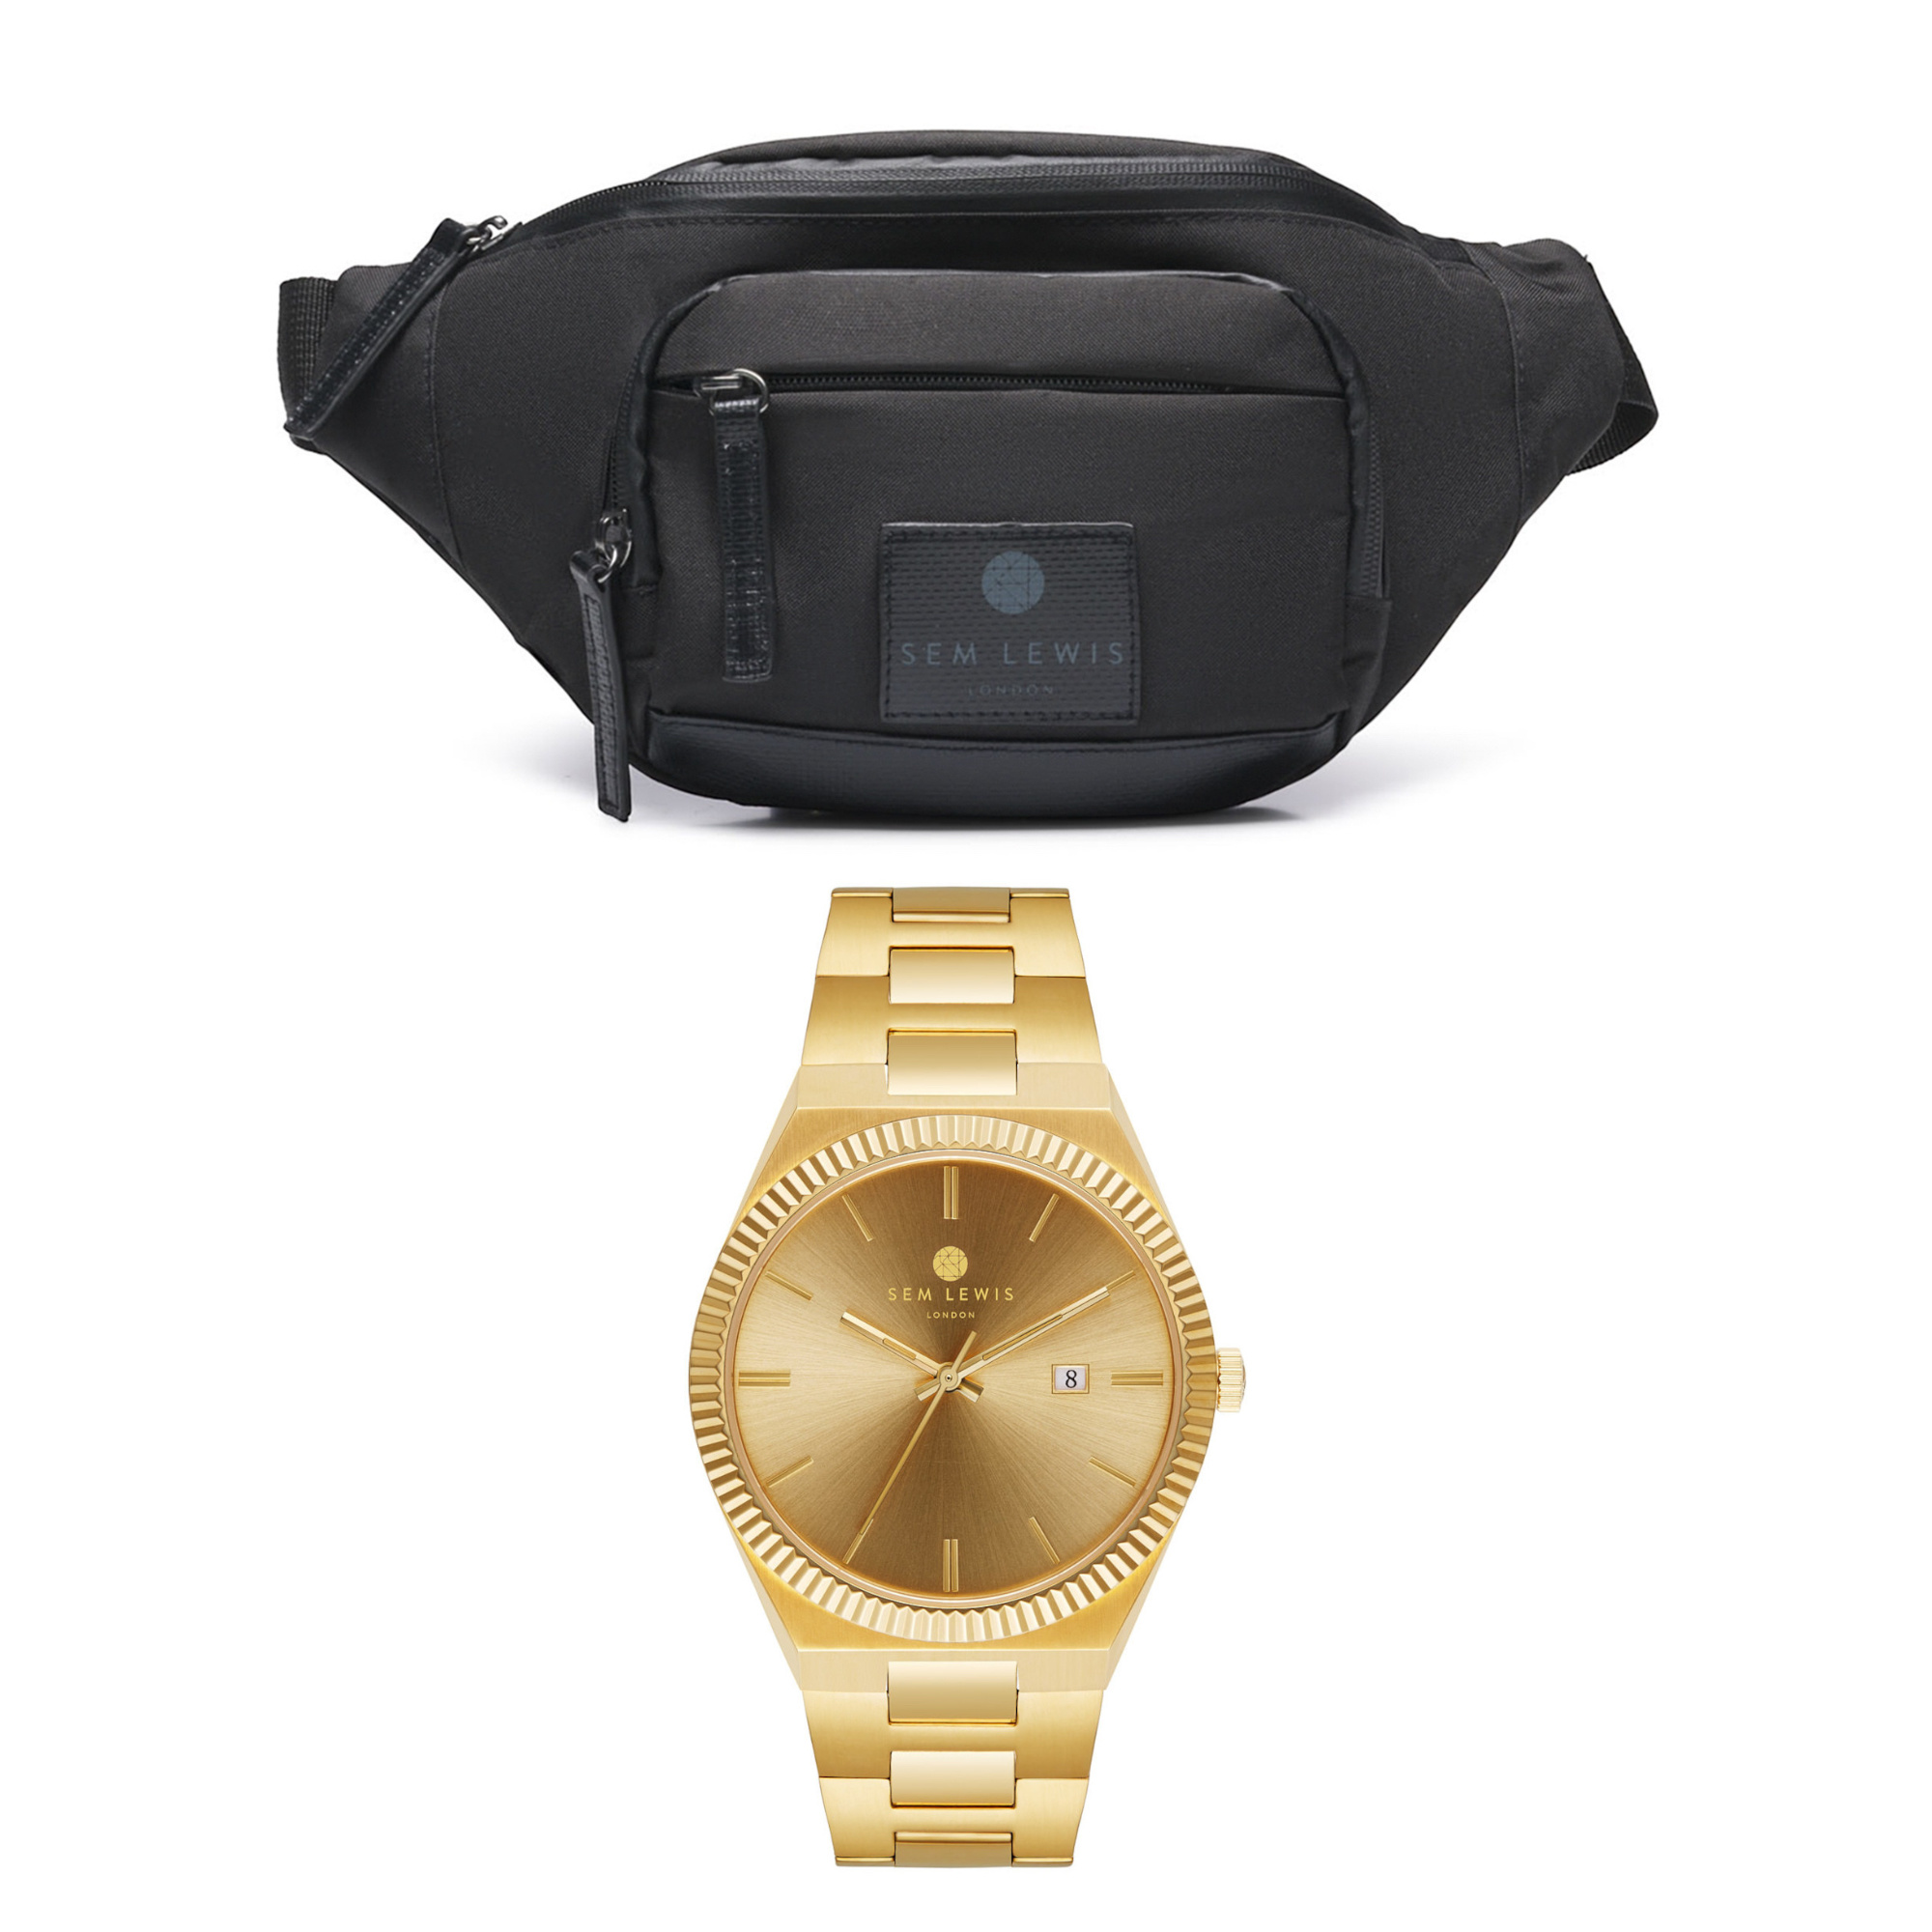 Sem Lewis Sem's Present black fanny pack and gold colored watch